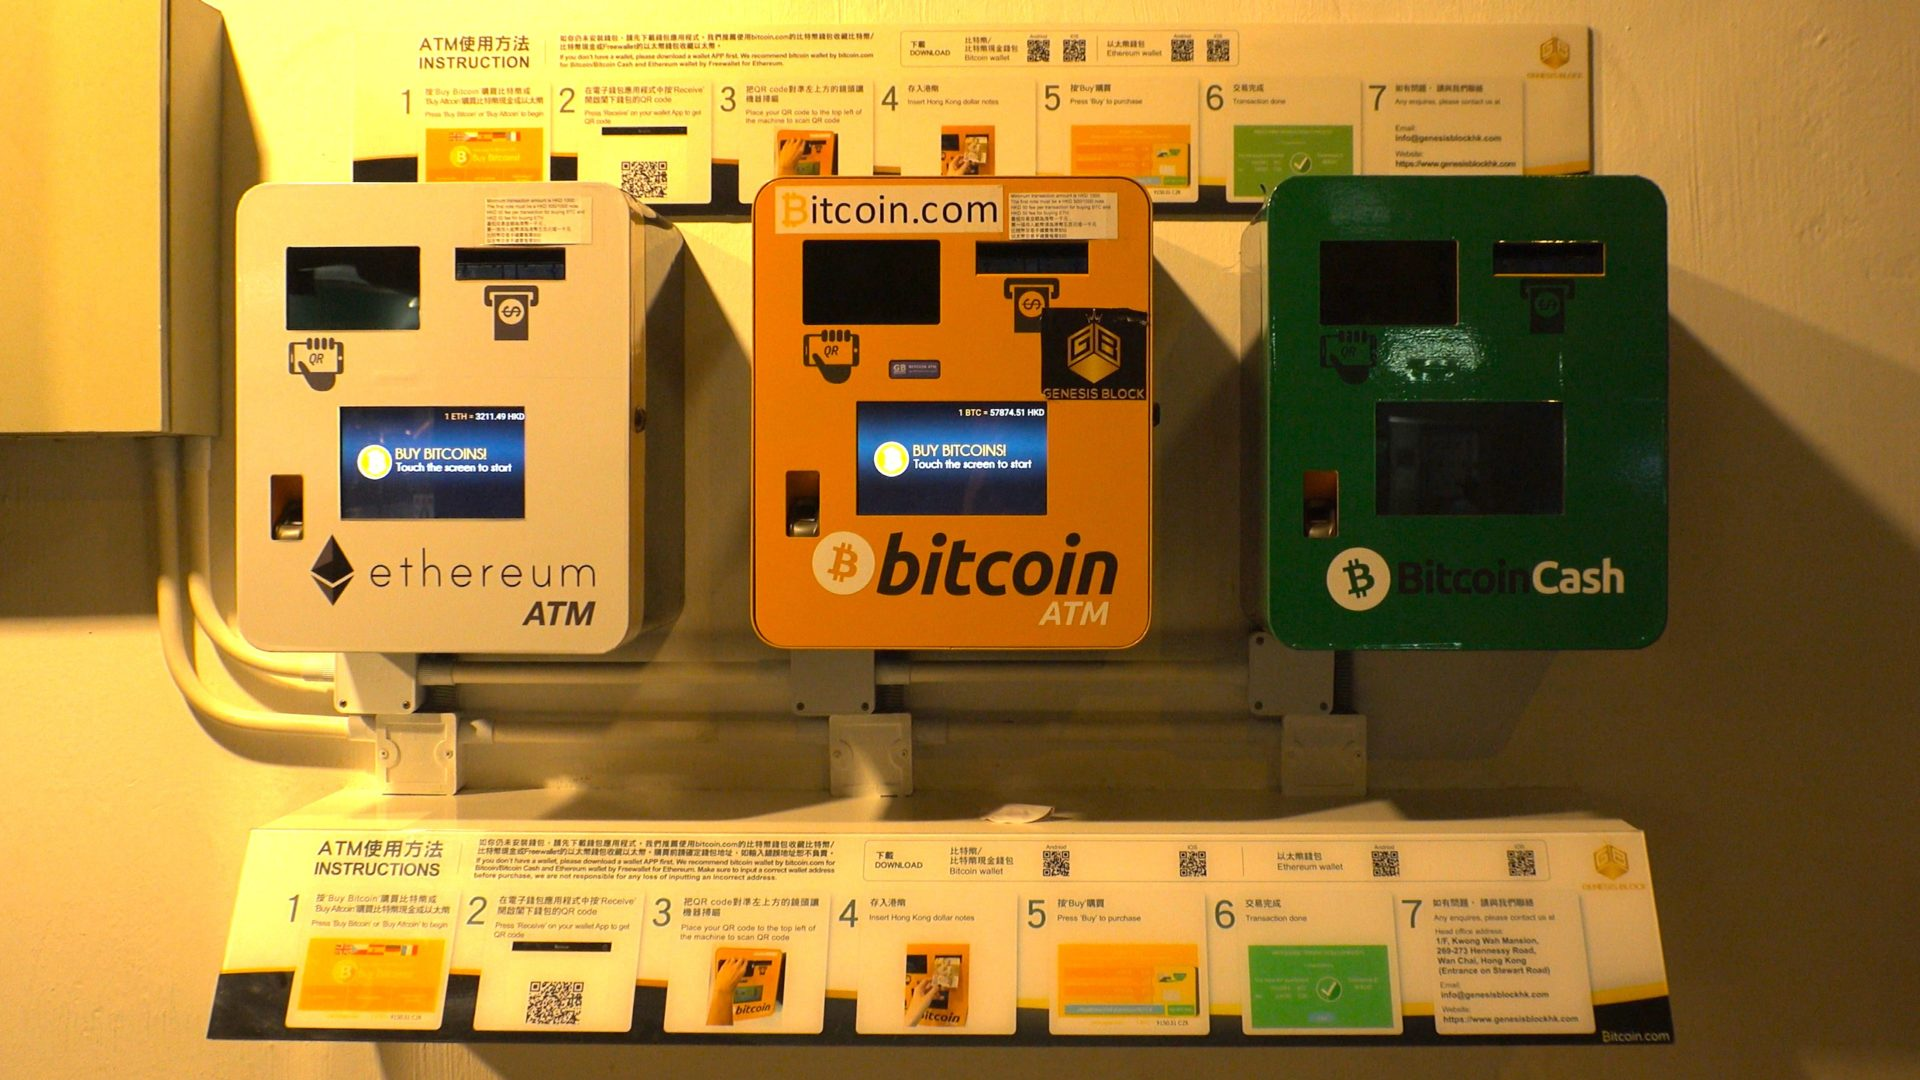 Research Says: There Has Been A Rise In Cryptocurrency ATM Machines